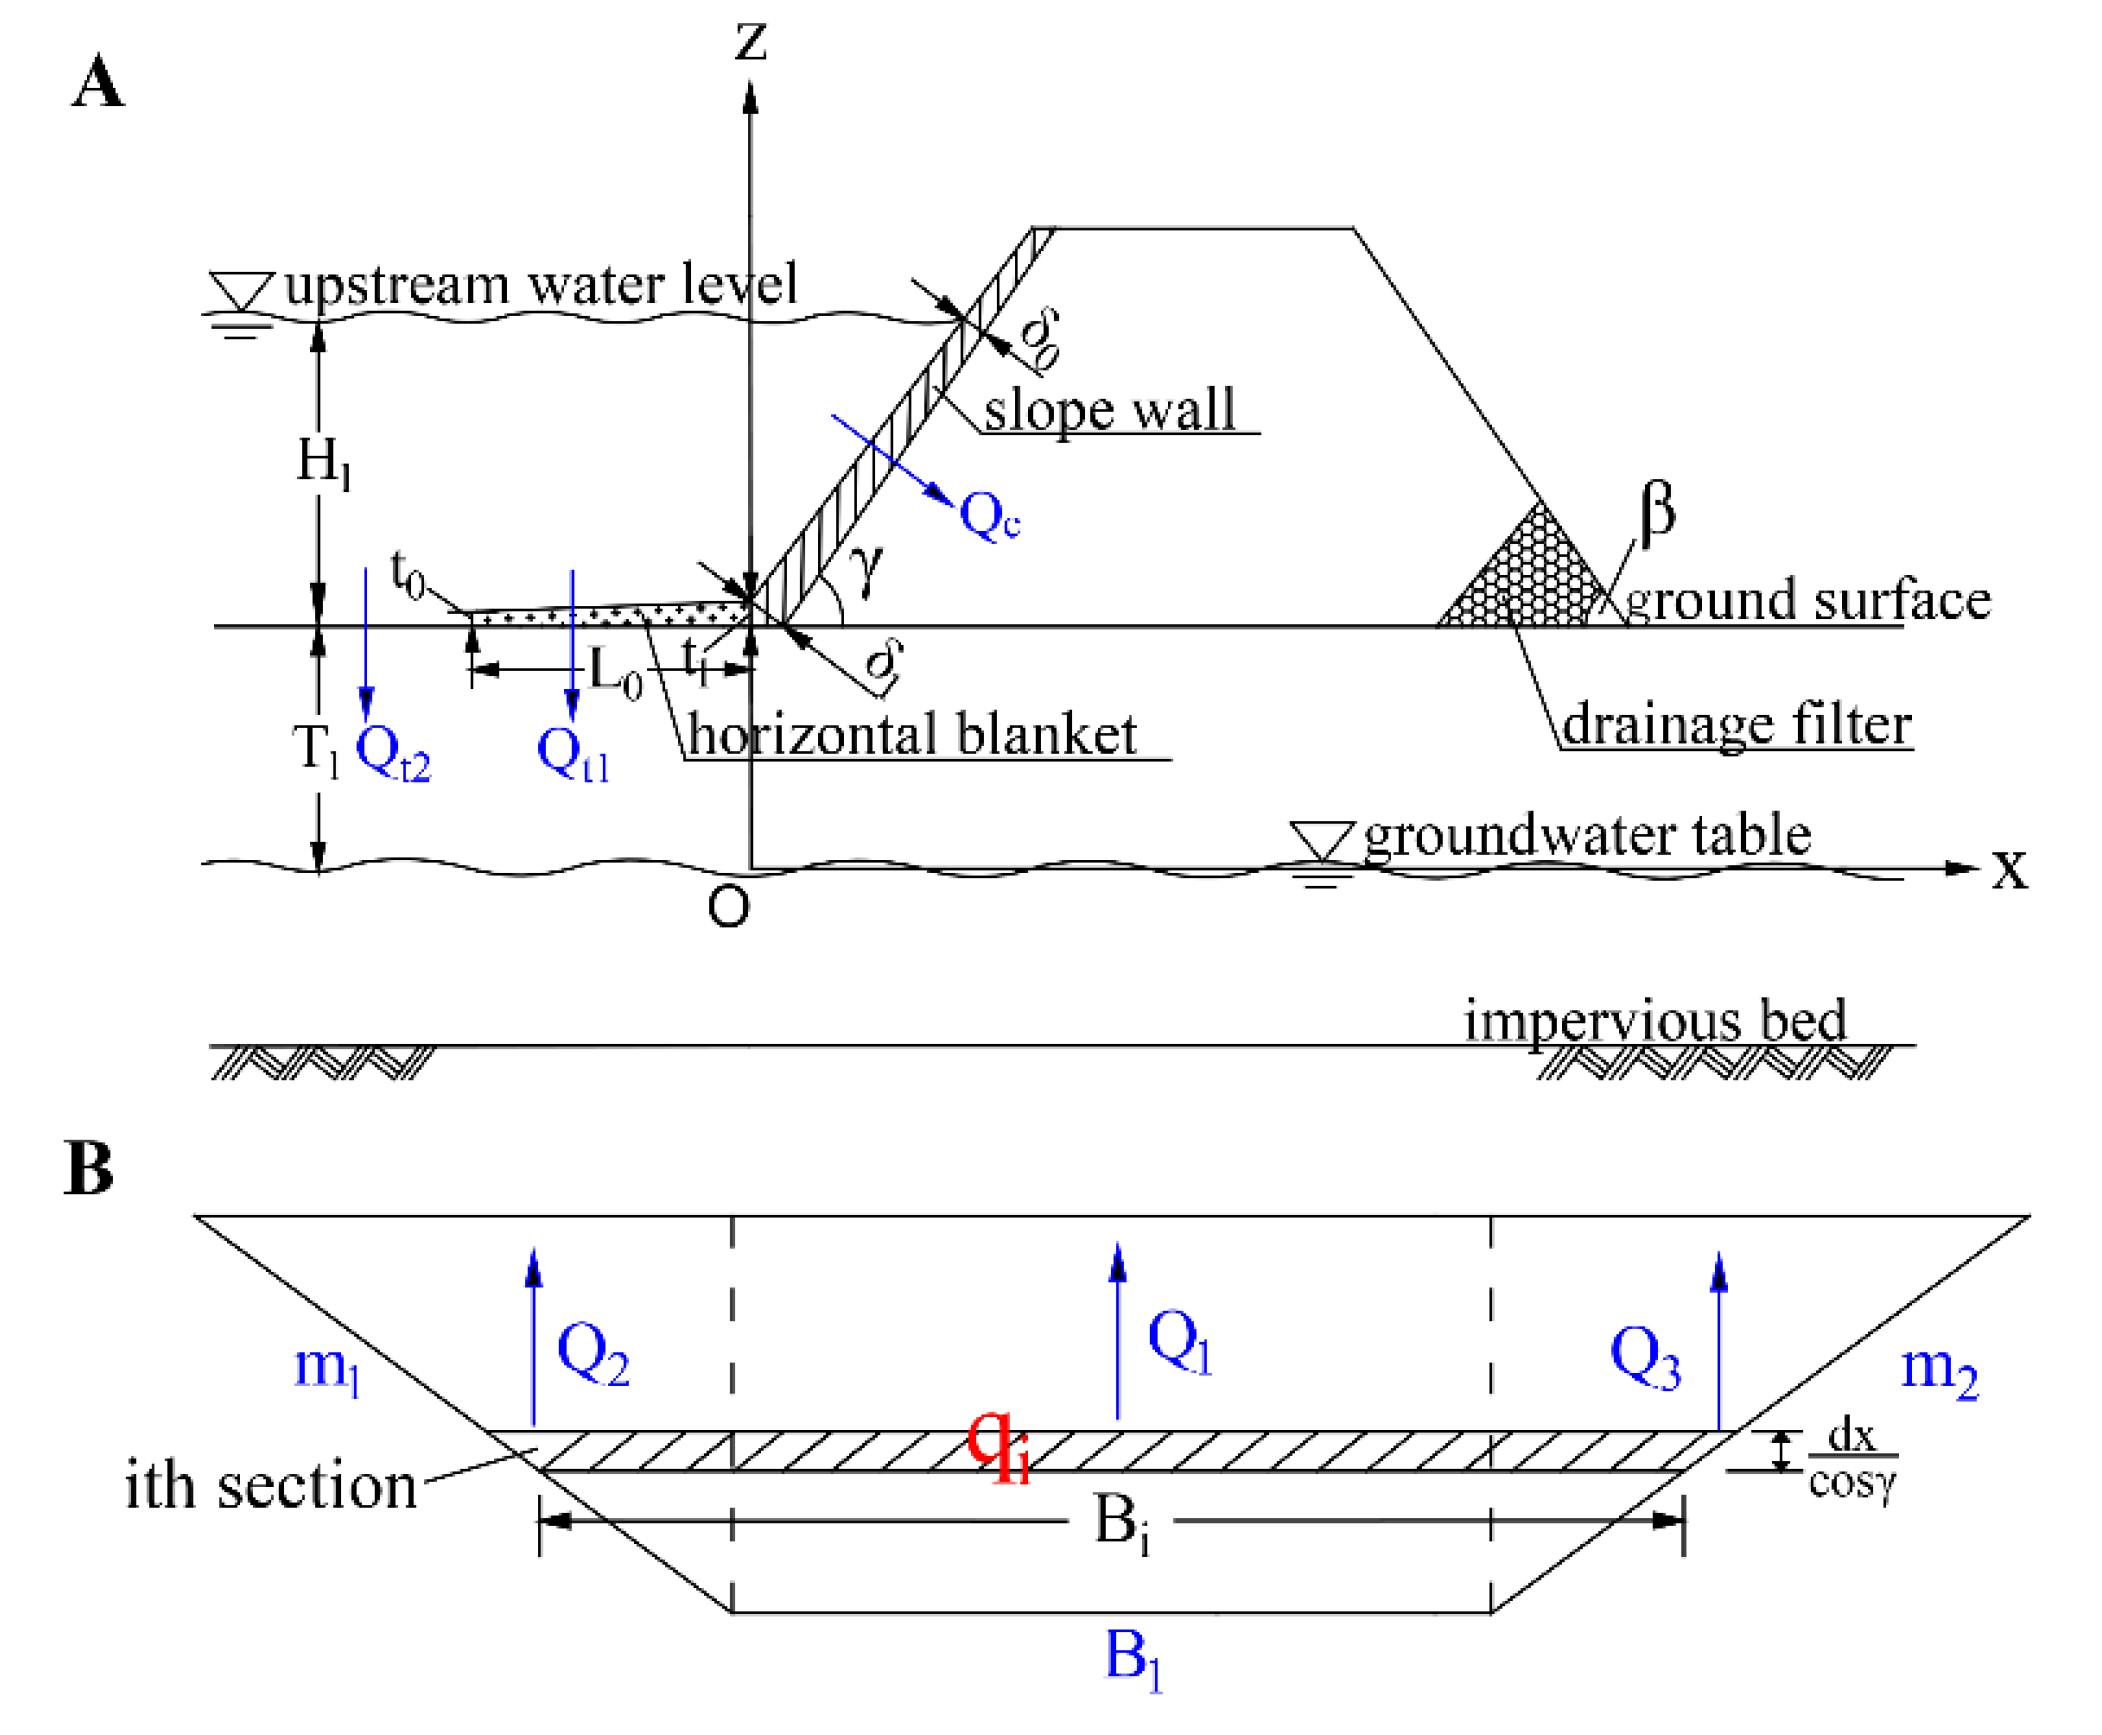 Applied Sciences Free Full Text A Simplified Calculation Method Of Seepage Flux For Slope Wall Rock Fill Dams With A Horizontal Blanket Html